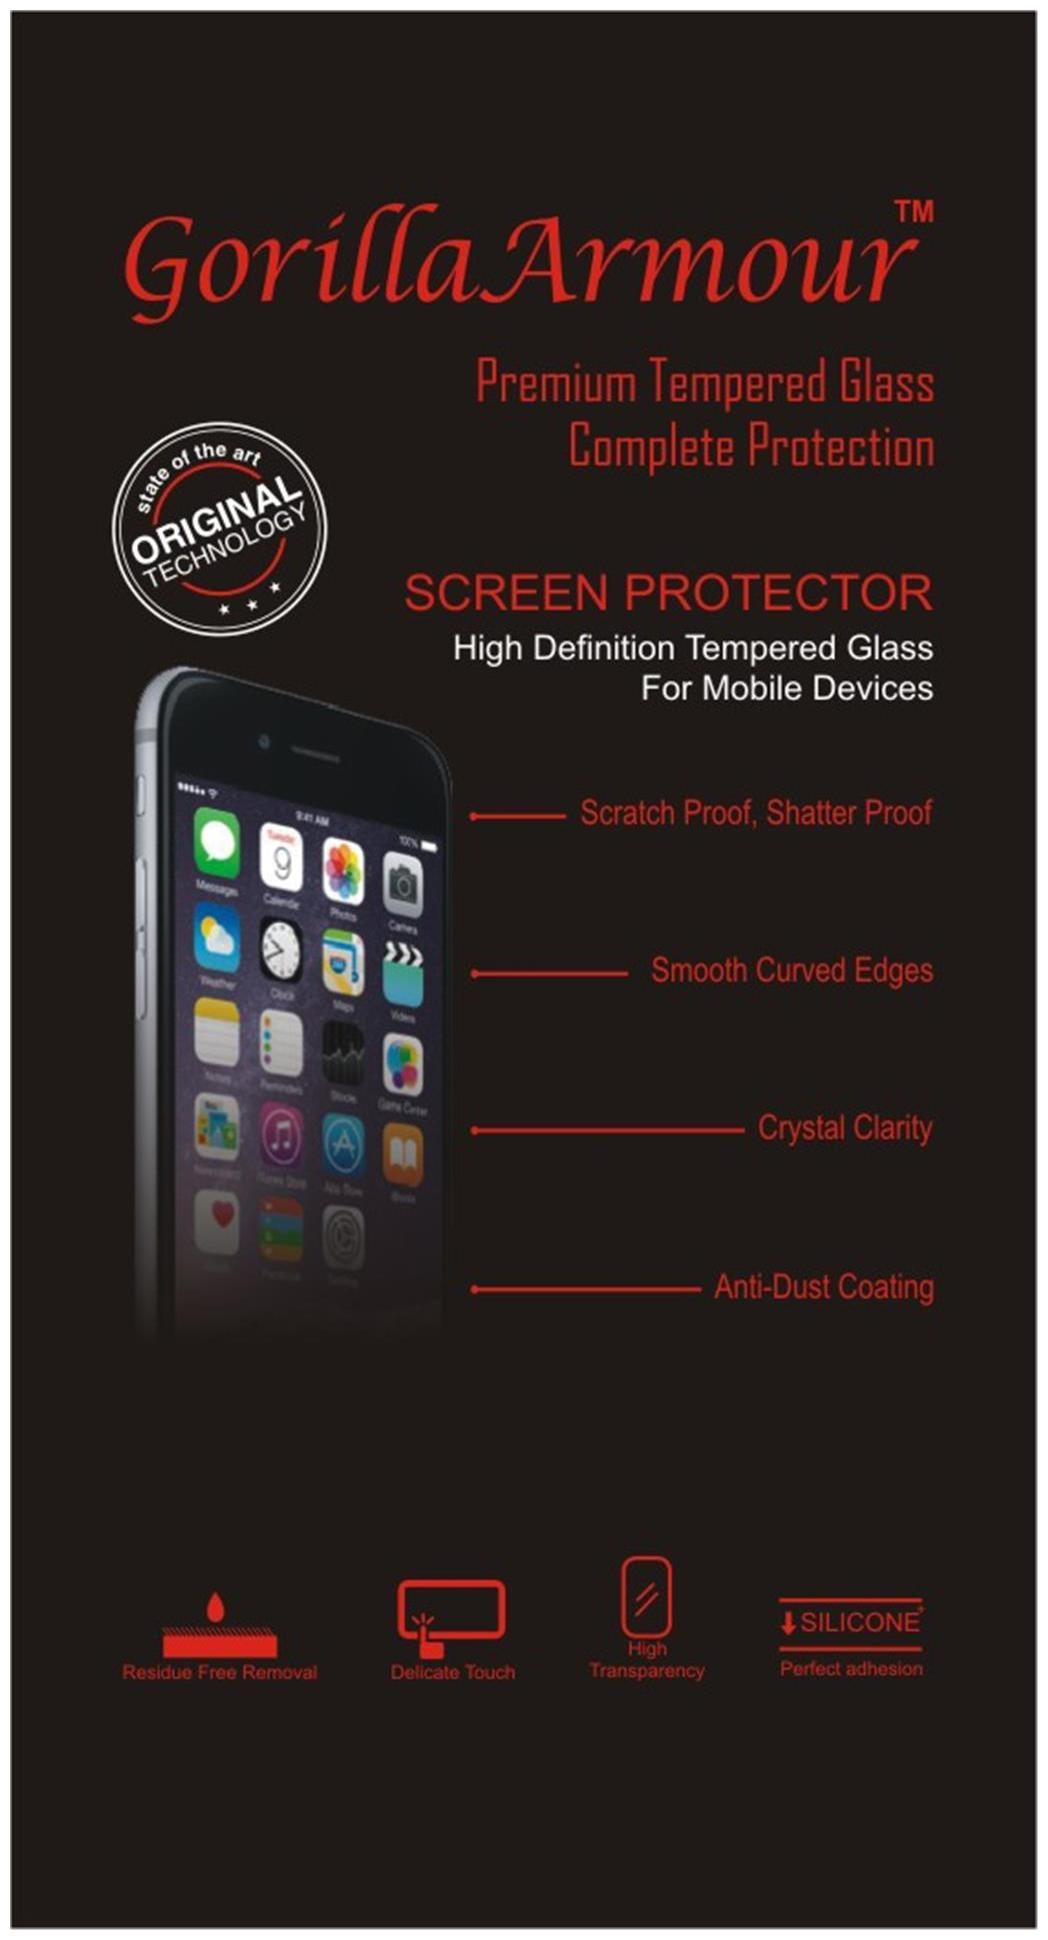 Gorilla Armour Premium Tempered Glass for Samsung Galaxy S7 Edge  by TheWholeSellers